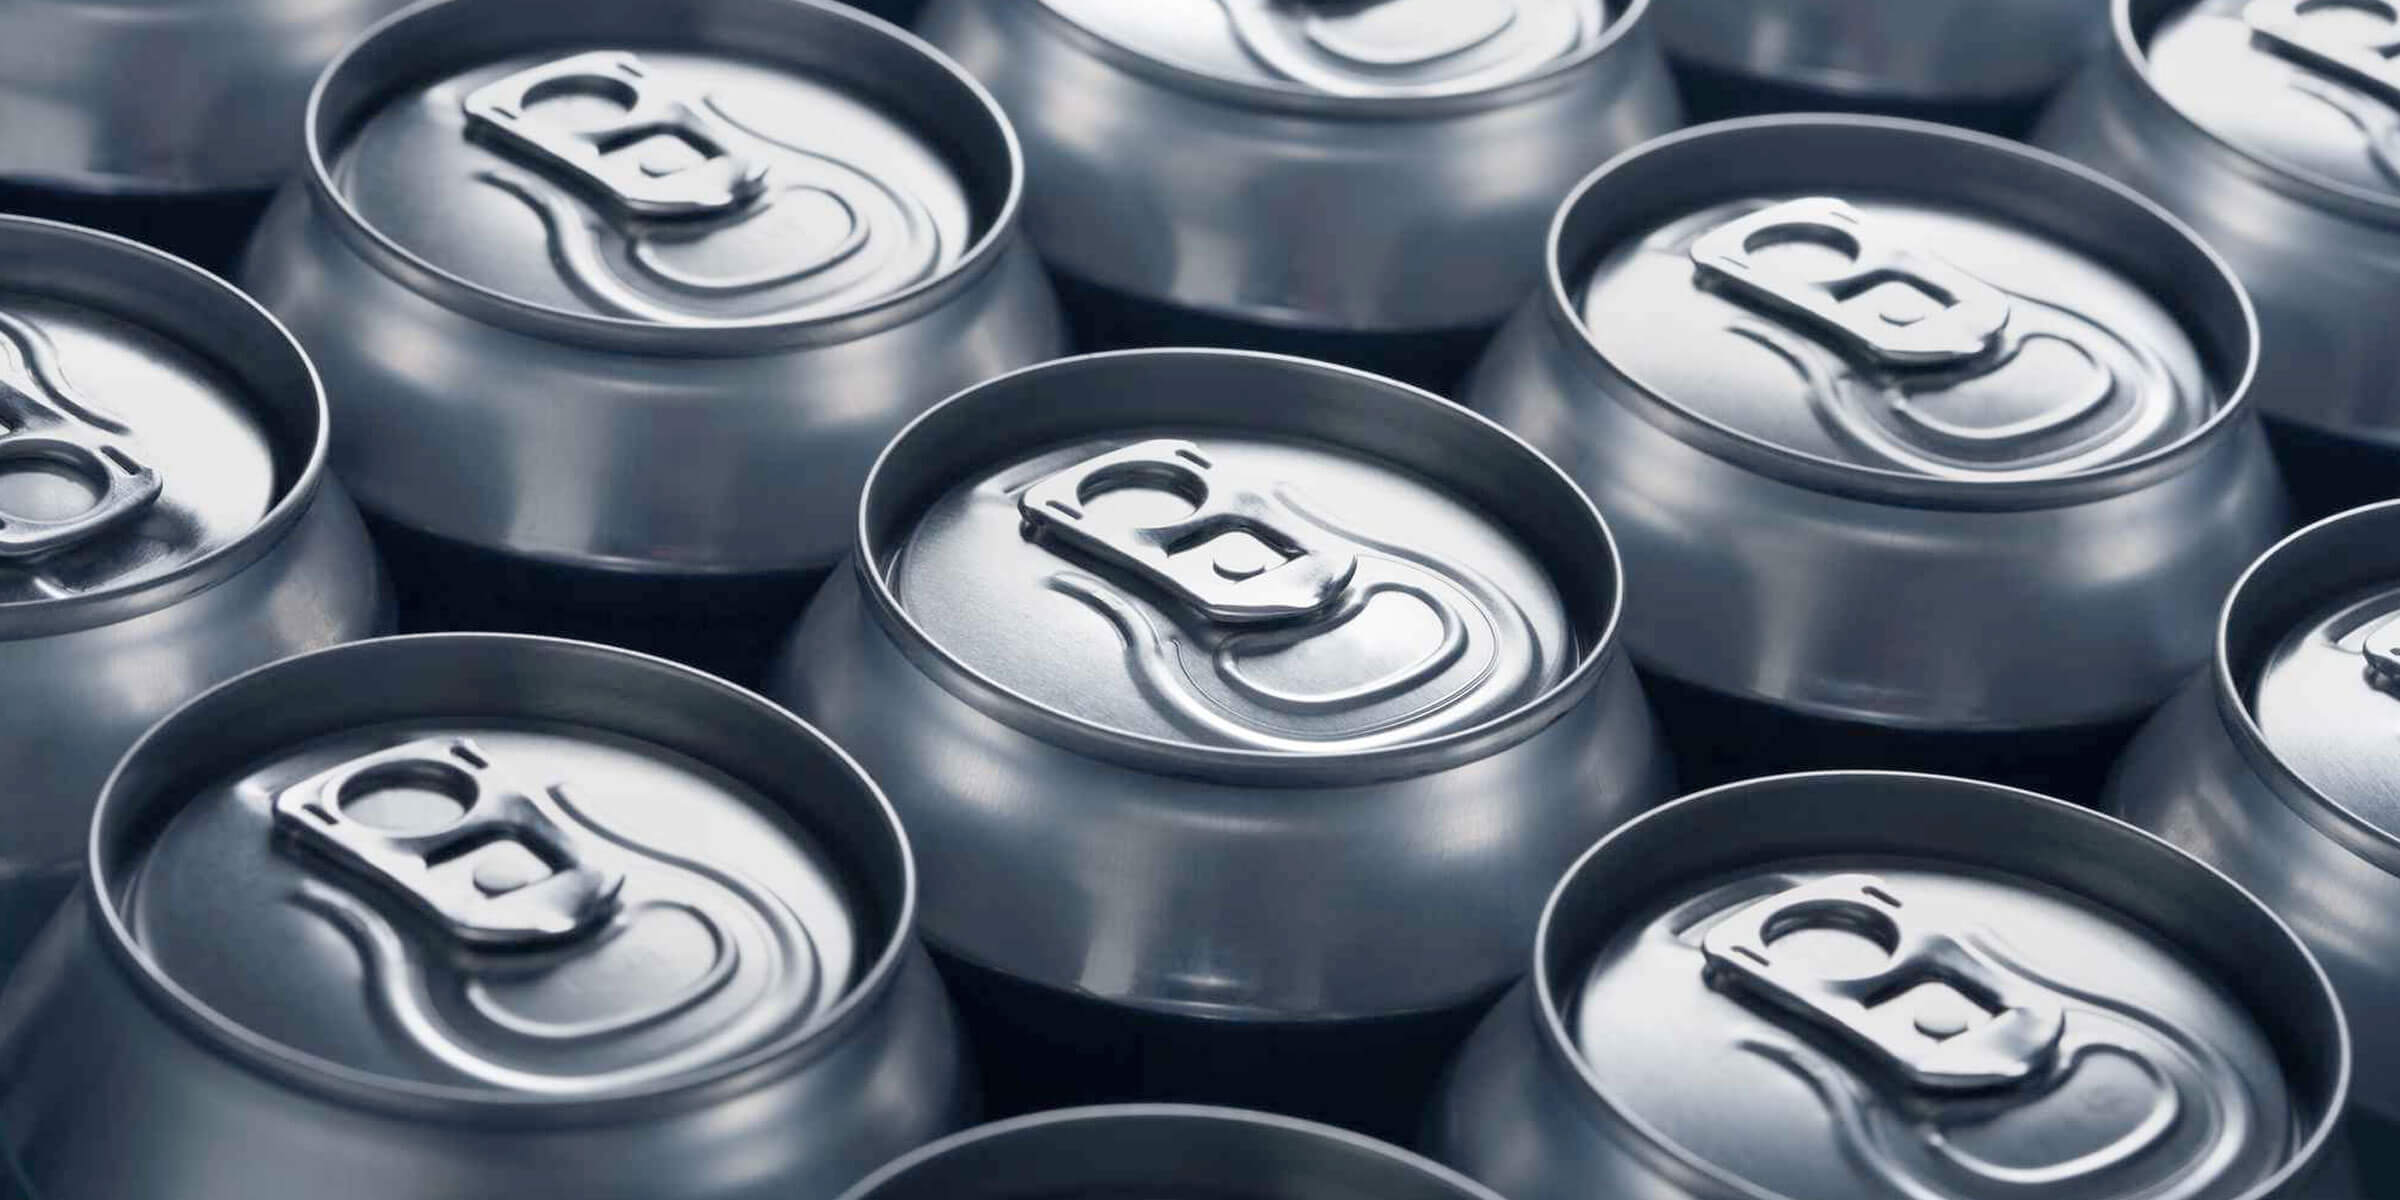 President Donald Trump announced that he would be placing a tariff on aluminum imports that could increase the cost of beer